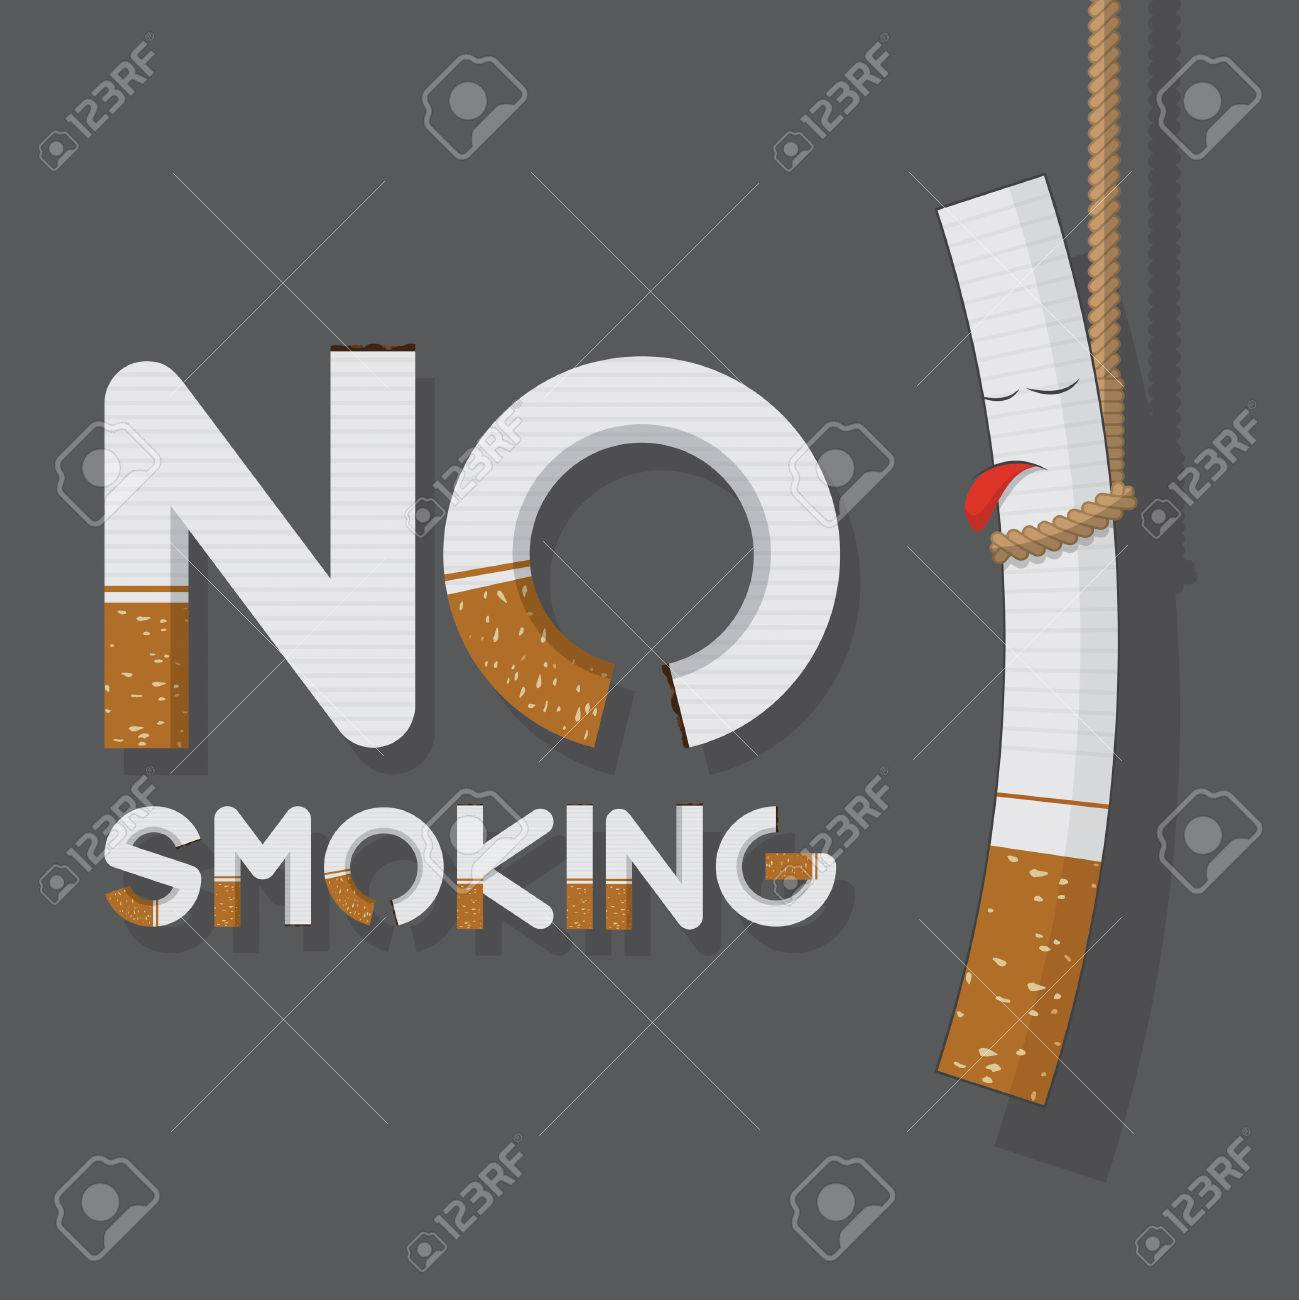 May 31st World No Tobacco Day poster. No smoking sign in cigarette letters and hanging cigarette. Icons. Vector. Illustration - 39081820